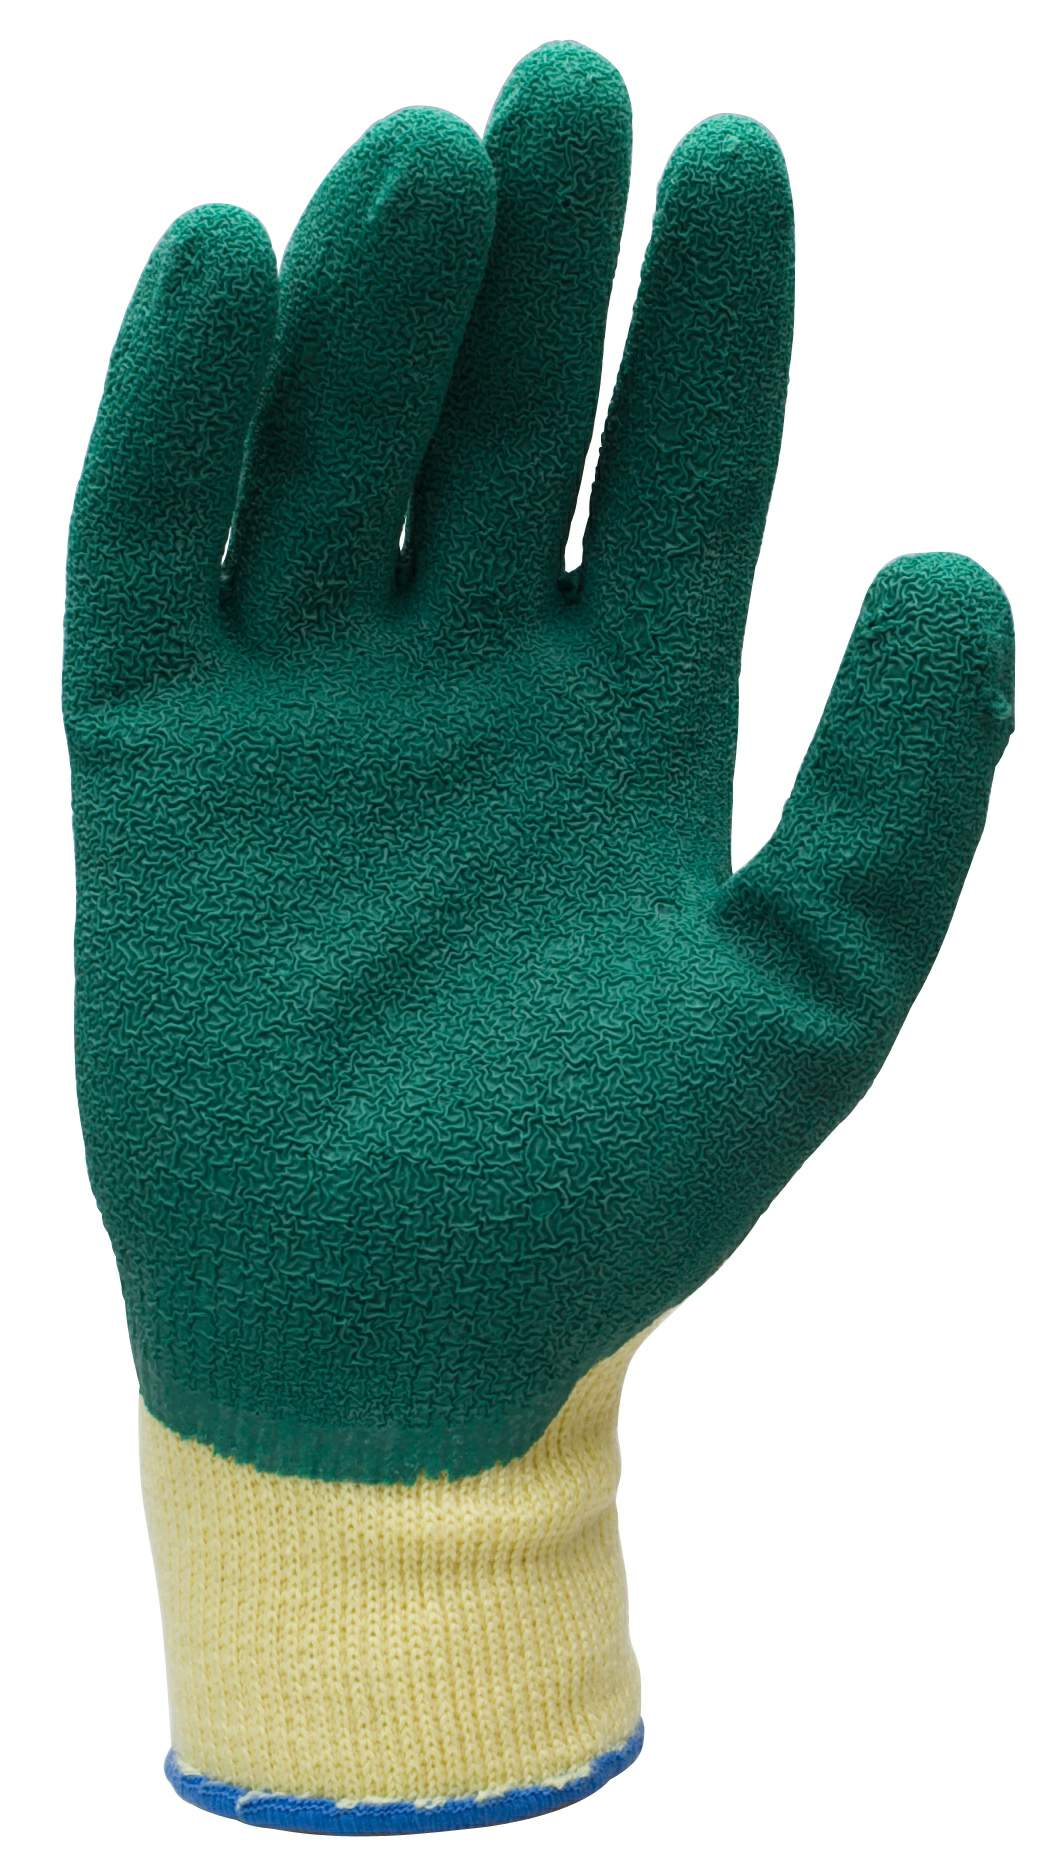 Thumbnail - Green Rubber Grip Gloves Size 8